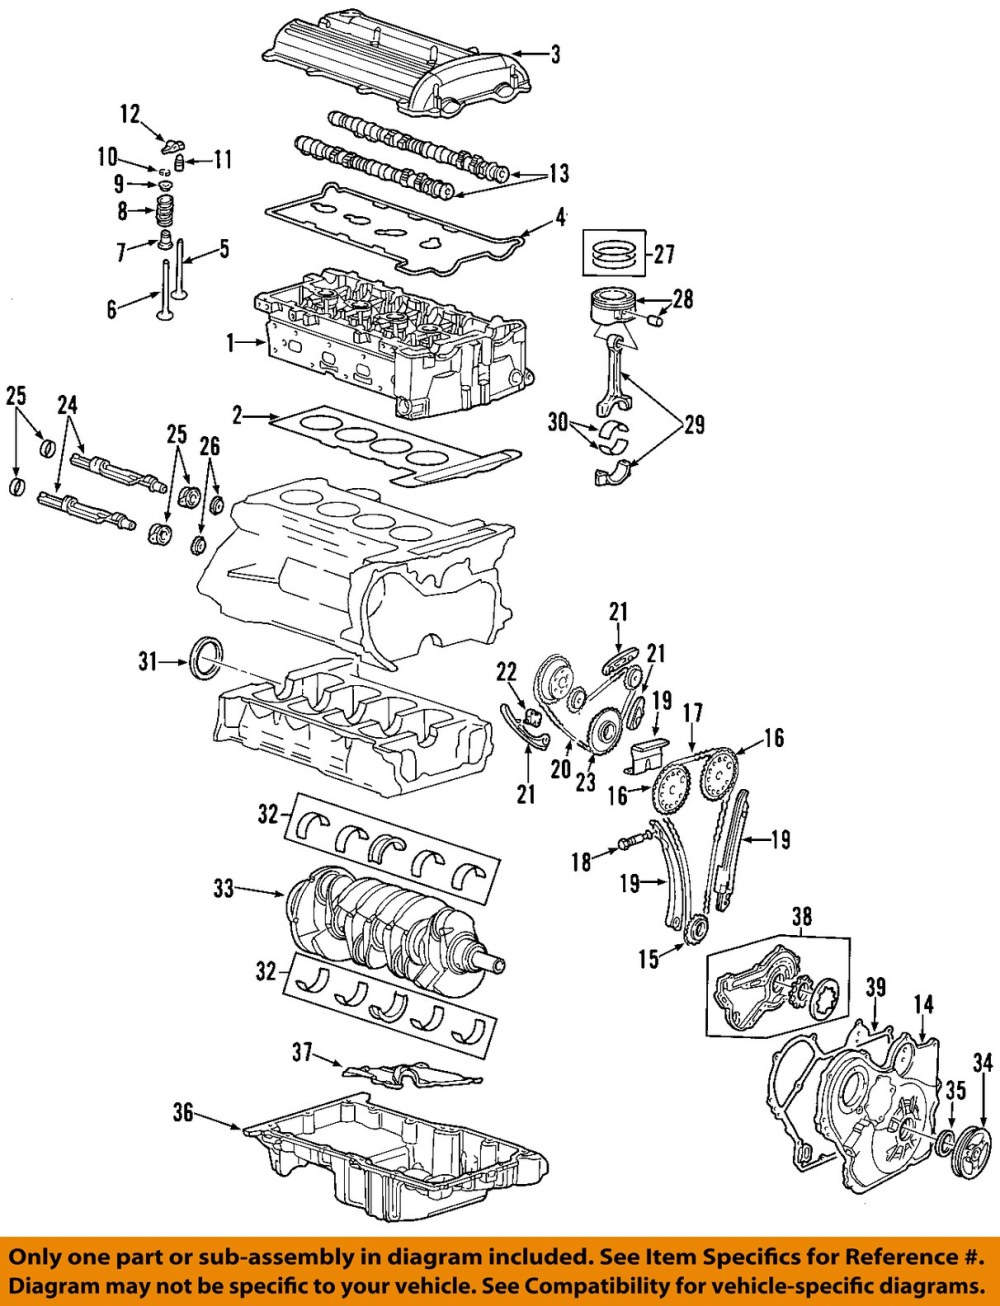 medium resolution of 2003 saturn 2 2 engine diagram wiring diagrams rh 60 treatchildtrauma de 2002 saturn sl1 engine